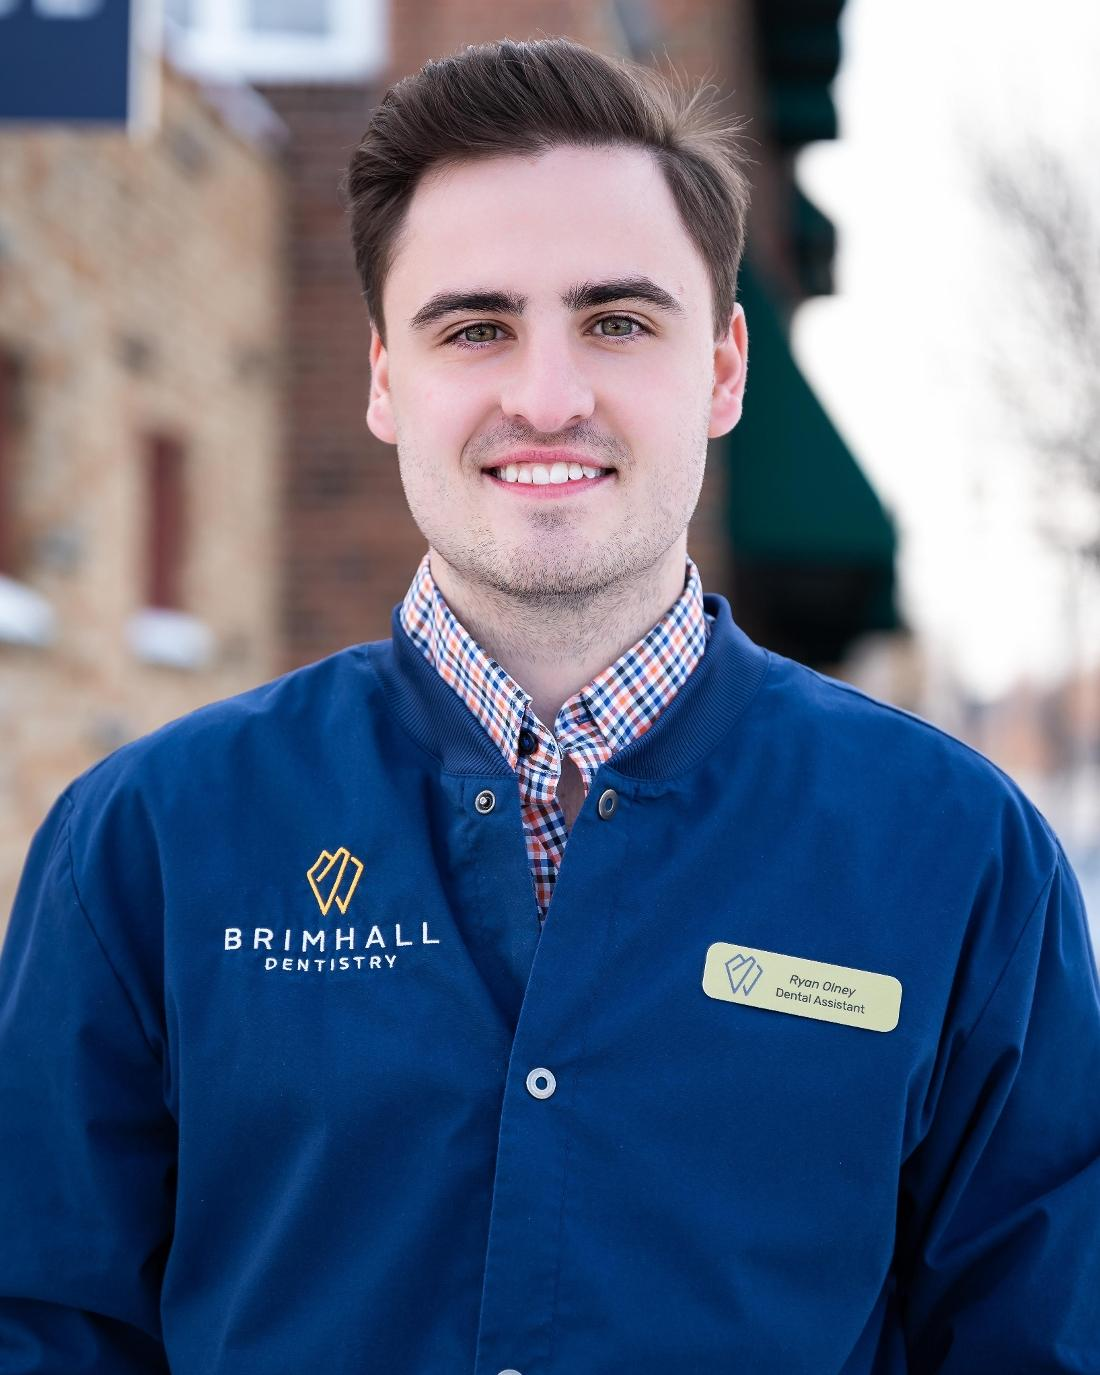 Headshot of Ryan Olney a dental assistant at Brimhall Dentistry